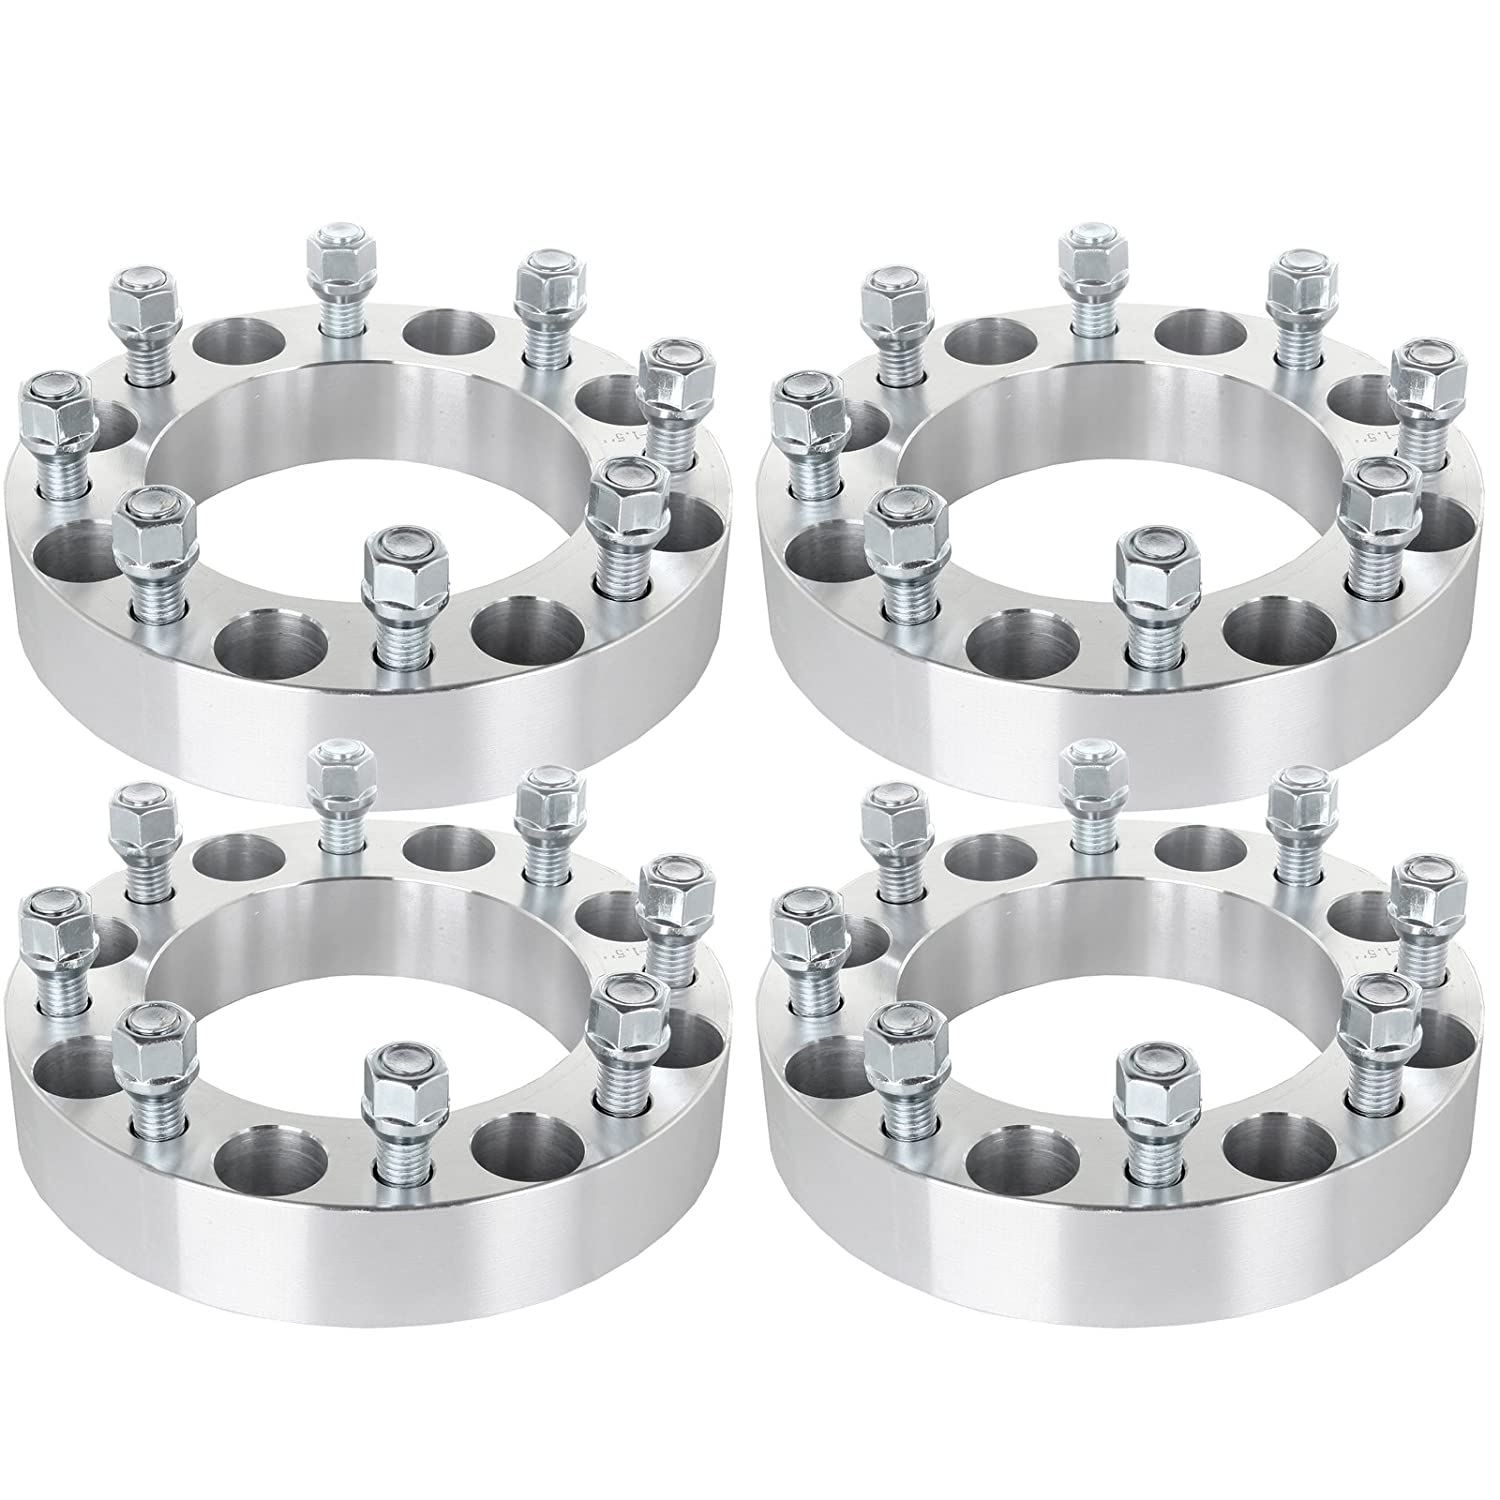 ECCPP 8x170 Wheel Spacers 1.5' 8x170mm to 8x170mm(125 mm) 8 Lug for Ford F-250 F-350 Excursion Powerstroke 1999 2000 2001 2002 with 14x2 Studs & Lug Nuts